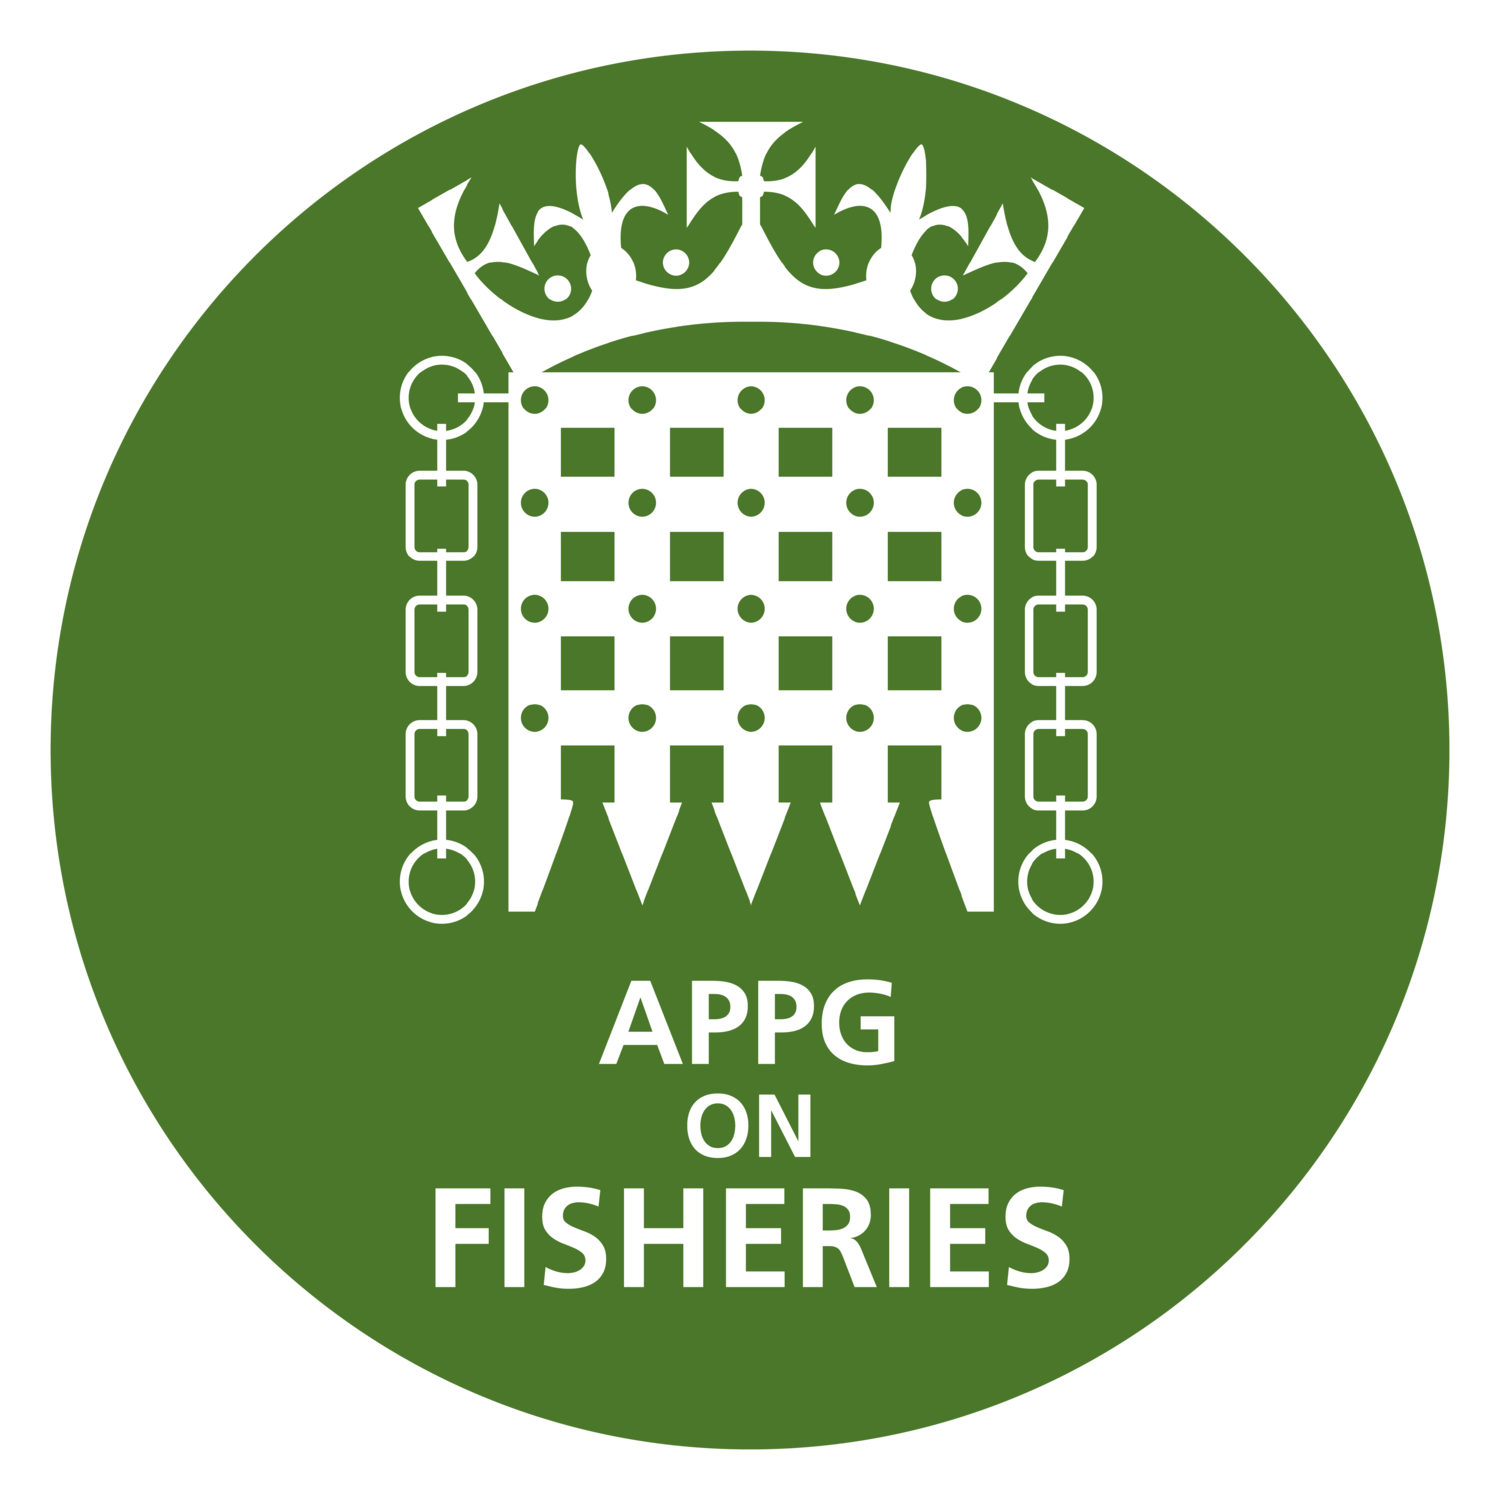 All Party Parliamentary Fisheries Group